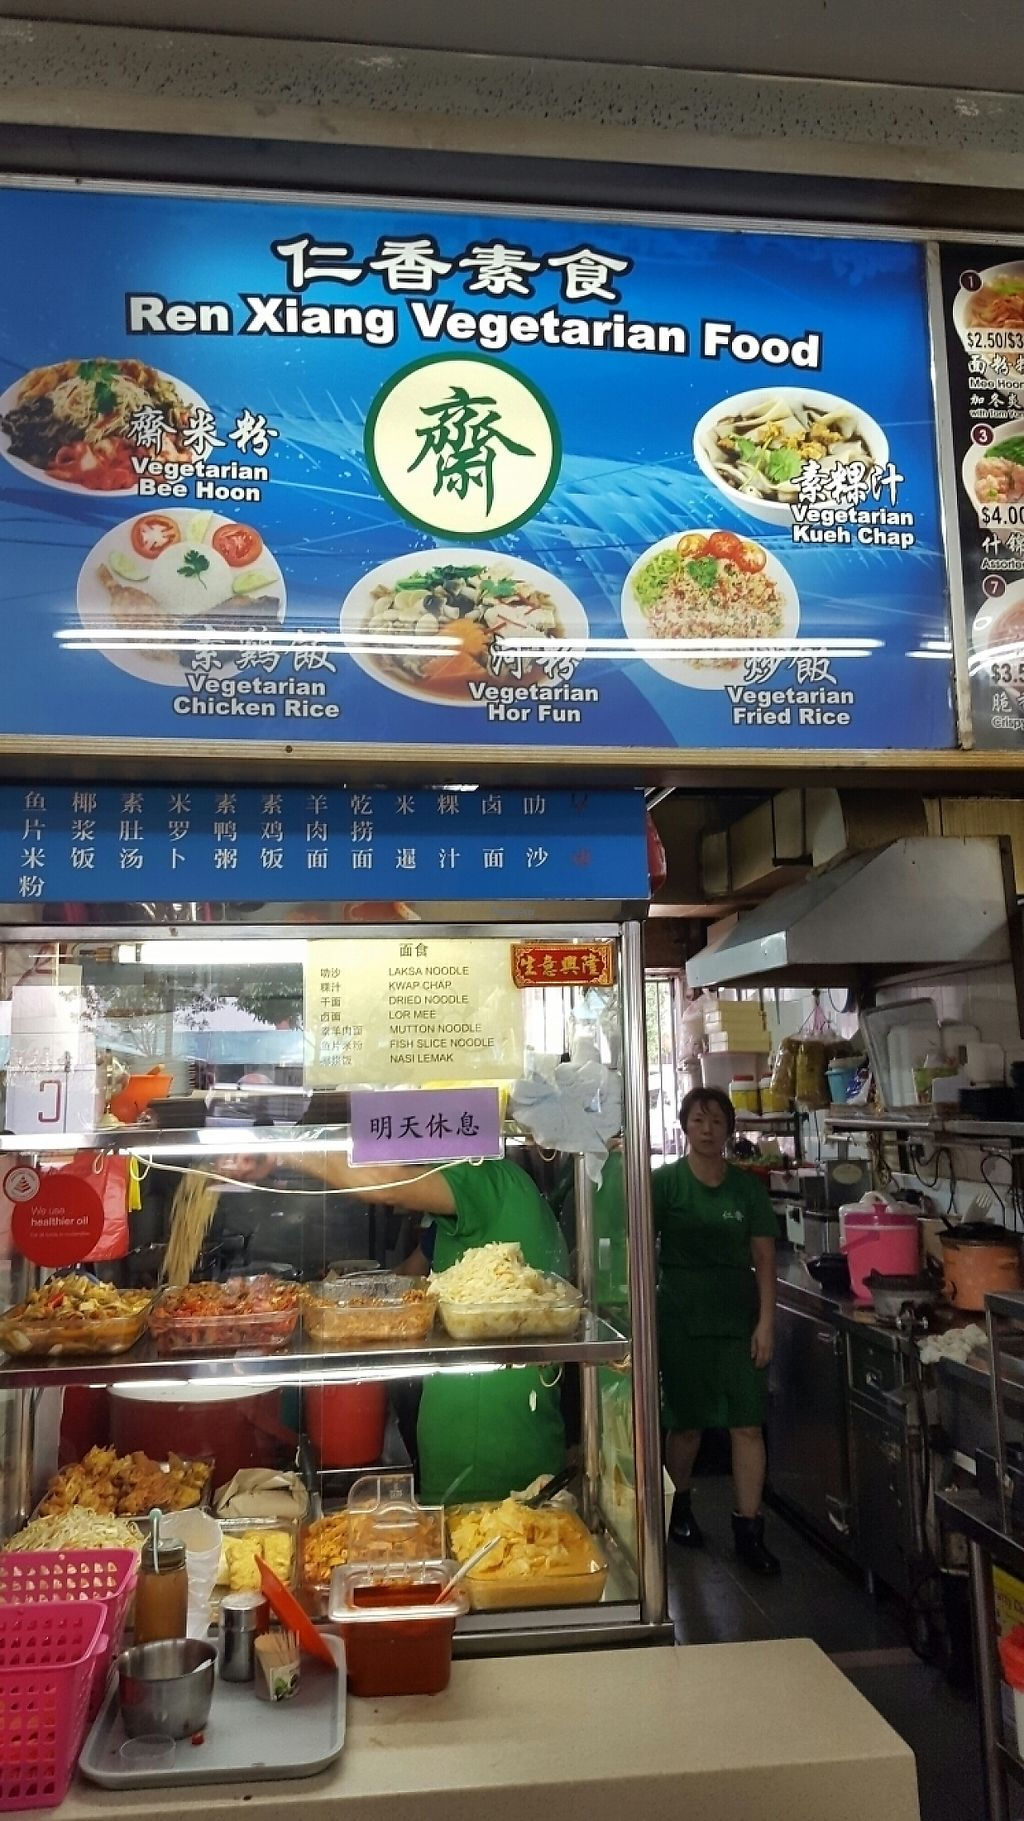 "Photo of Ren Xiang Vegetarian Food  by <a href=""/members/profile/Love%40Sunshine"">Love@Sunshine</a> <br/>My visit on Mon 19 Dec 2016. Notice on store front showed they will b closed on 20/12/2016 <br/> December 19, 2016  - <a href='/contact/abuse/image/75565/202831'>Report</a>"